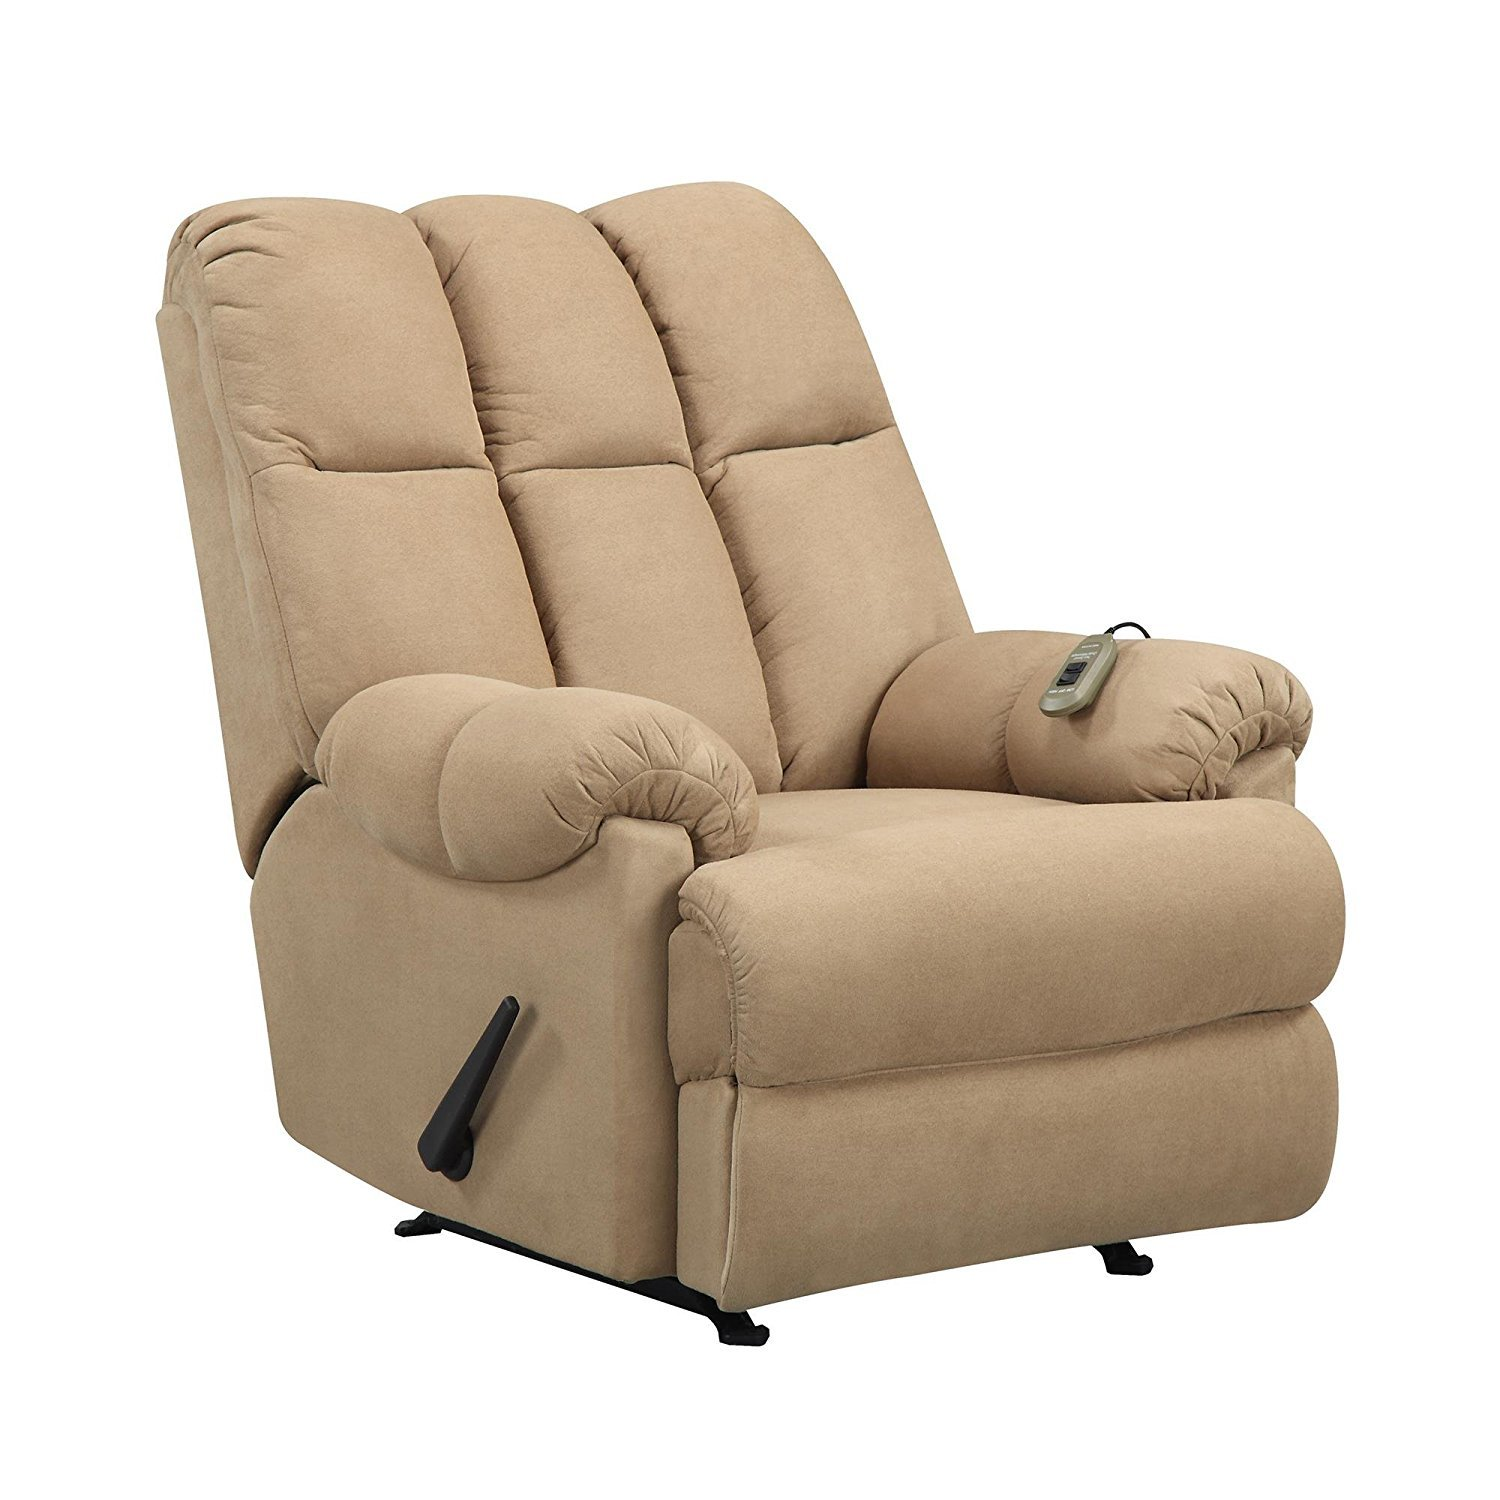 Dorel Living Padded Dual Massage Recliner  Tan Room Chairs Amazon com